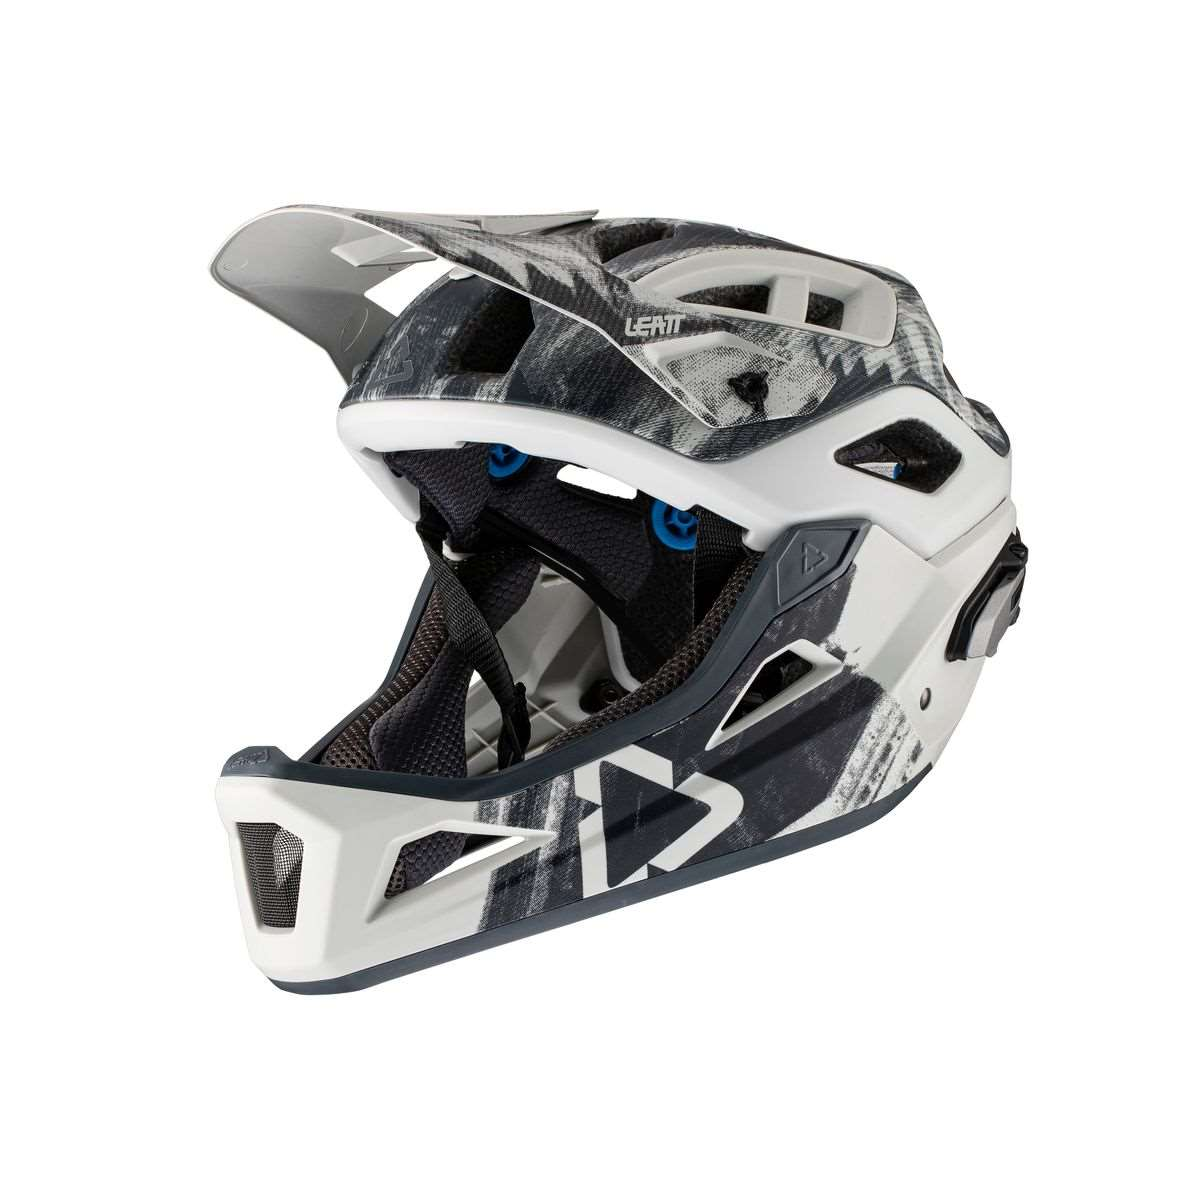 Casco Leatt MTB 3.0 Enduro v21.2 Steel mentoniera staccabile